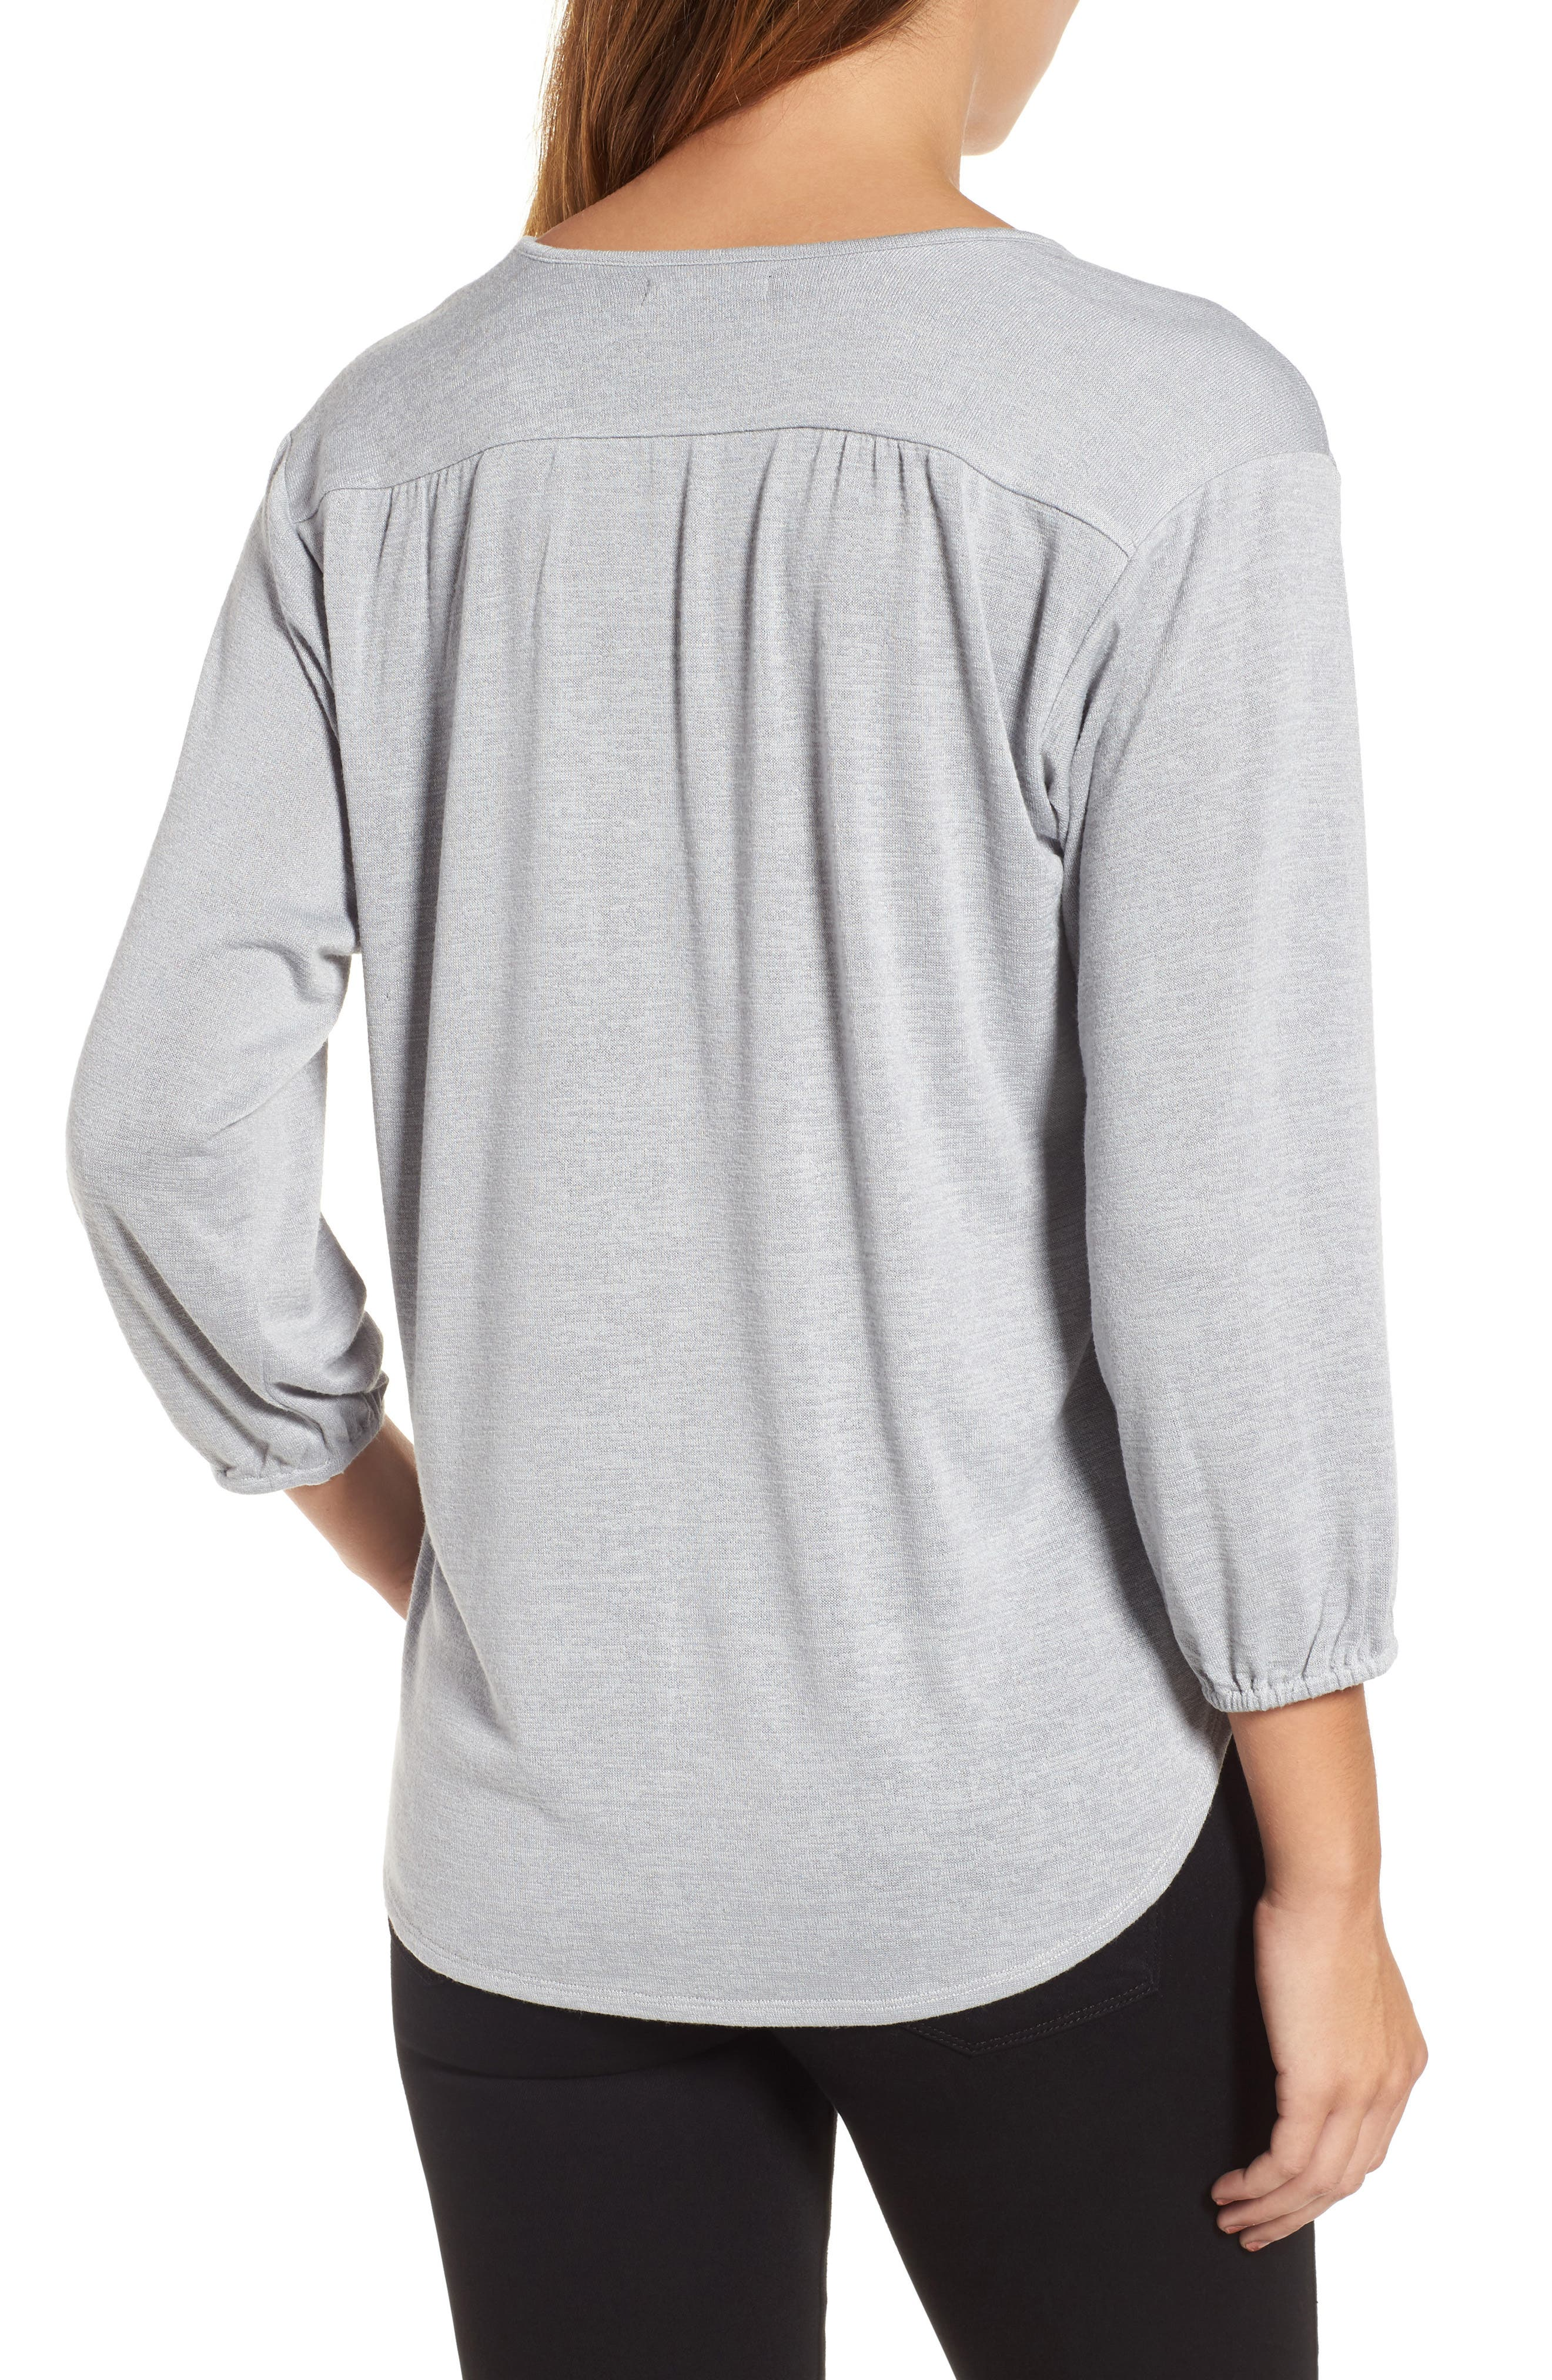 Snowfall Stretch Knit Top,                             Alternate thumbnail 2, color,                             Icy Grey